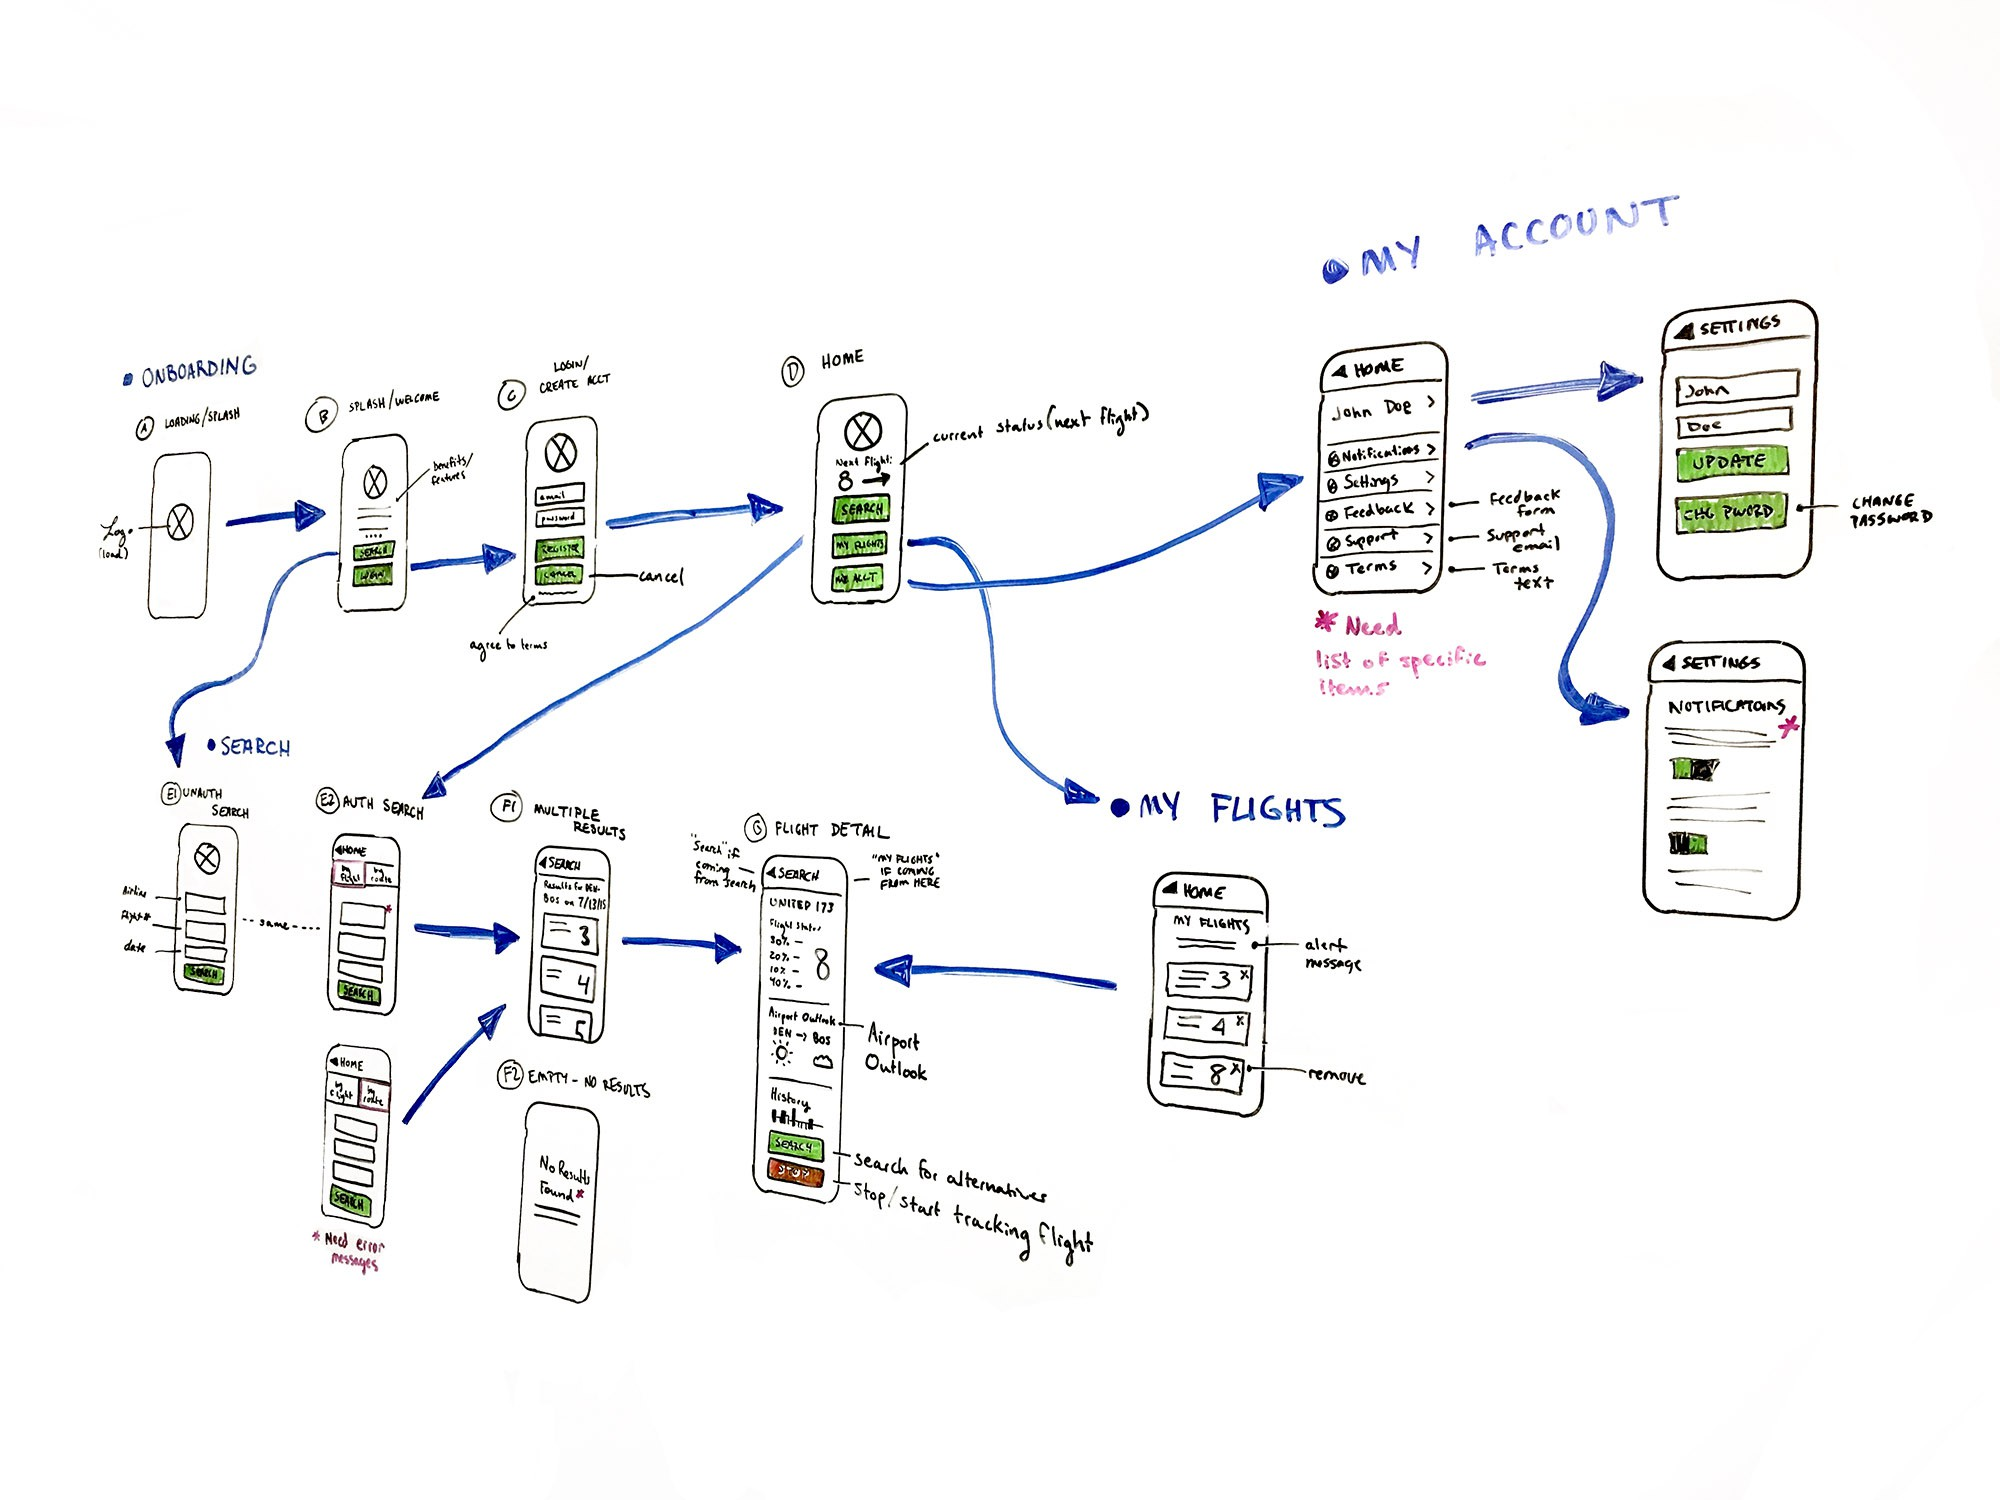 Sketches of user workflows